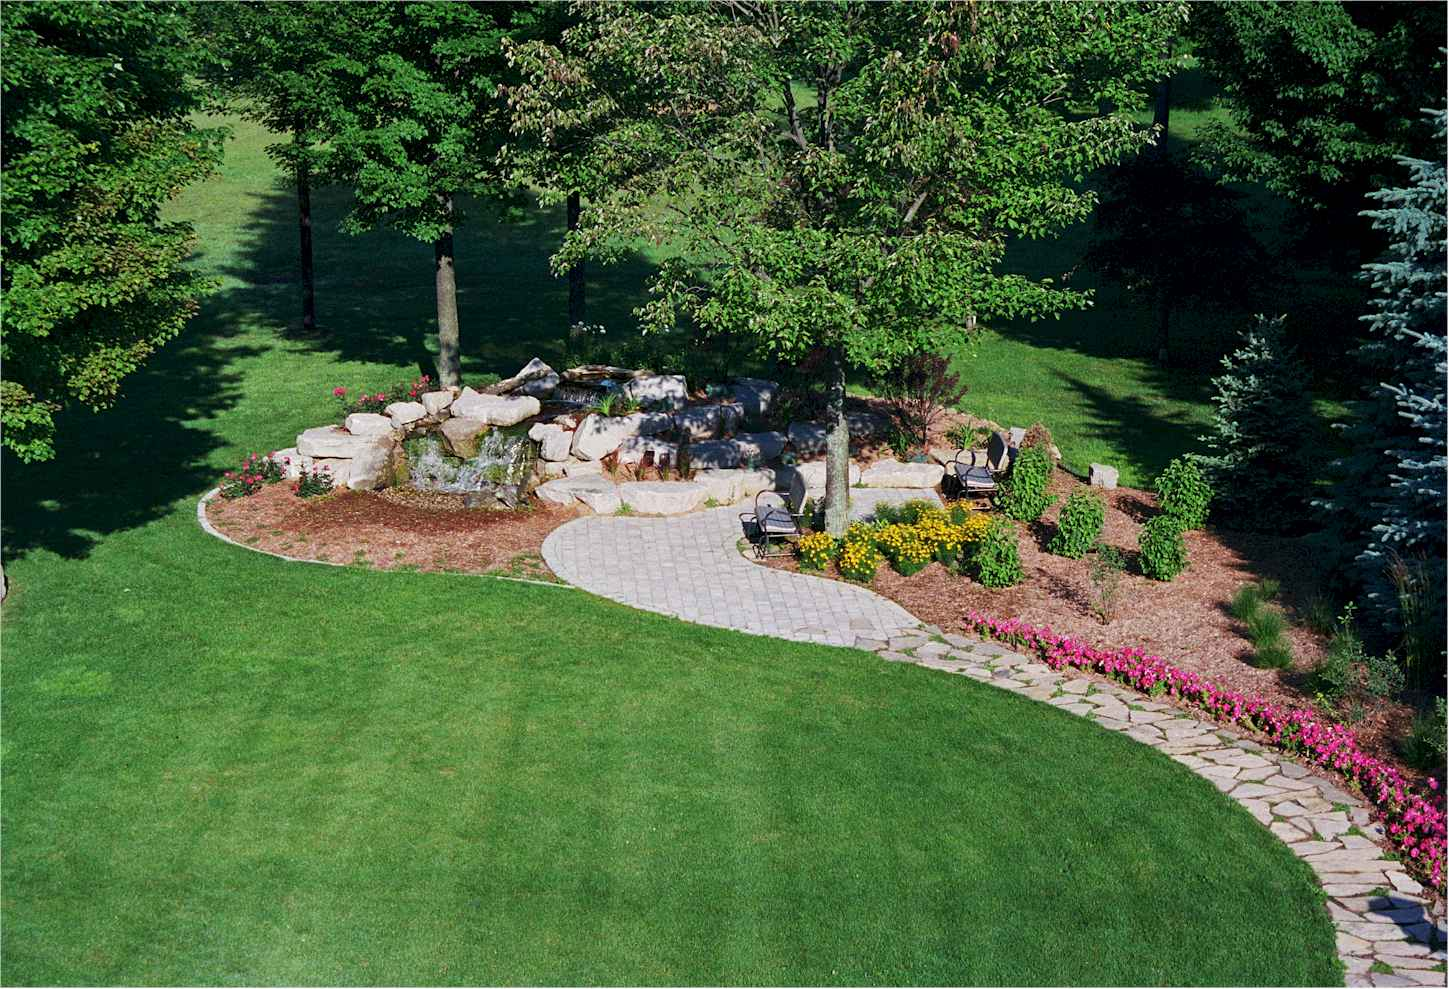 5 landscaping ideas to wow the neighbors for Large garden design ideas